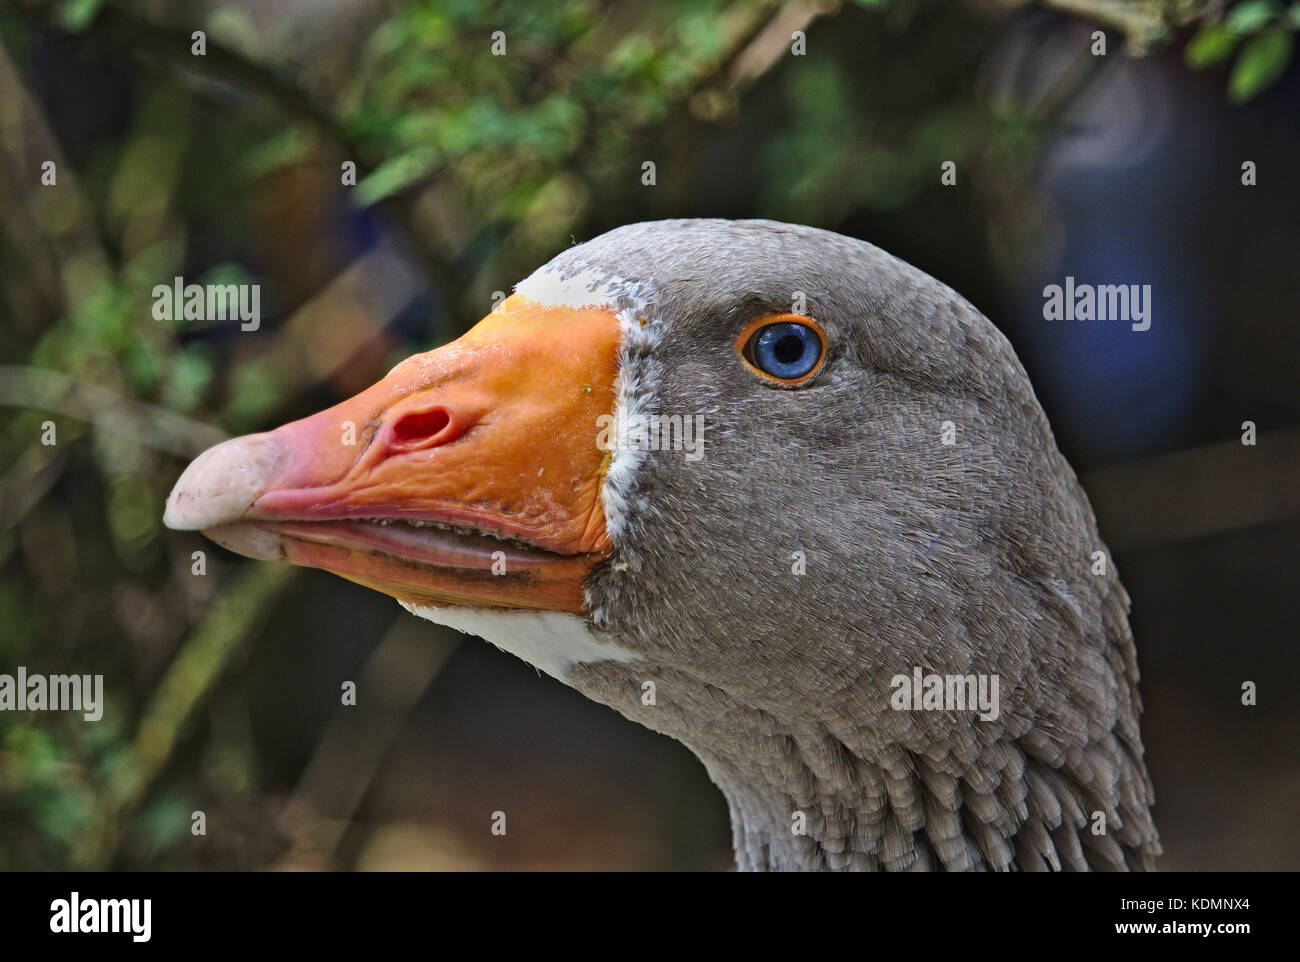 Portrait of a goose with striking blue eyes - Stock Image